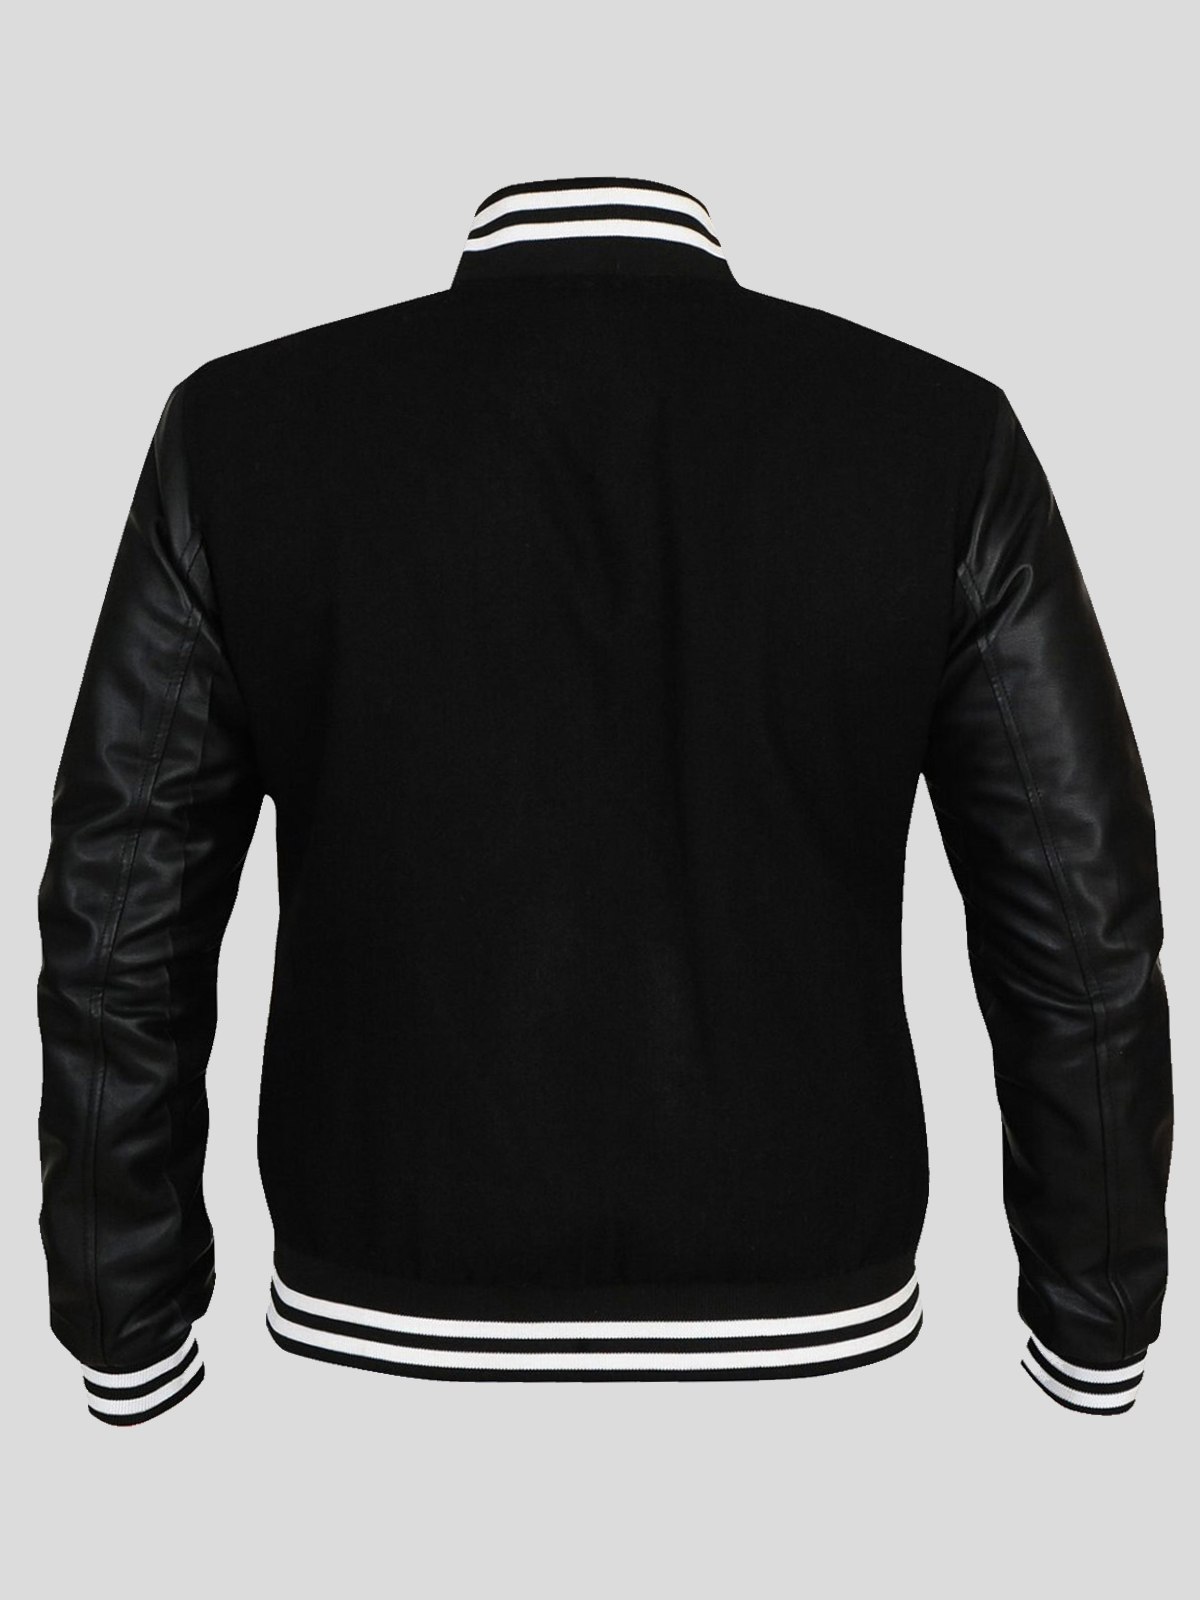 Men's Black Woolen Jacket with Ribbed Cuffs and Collars